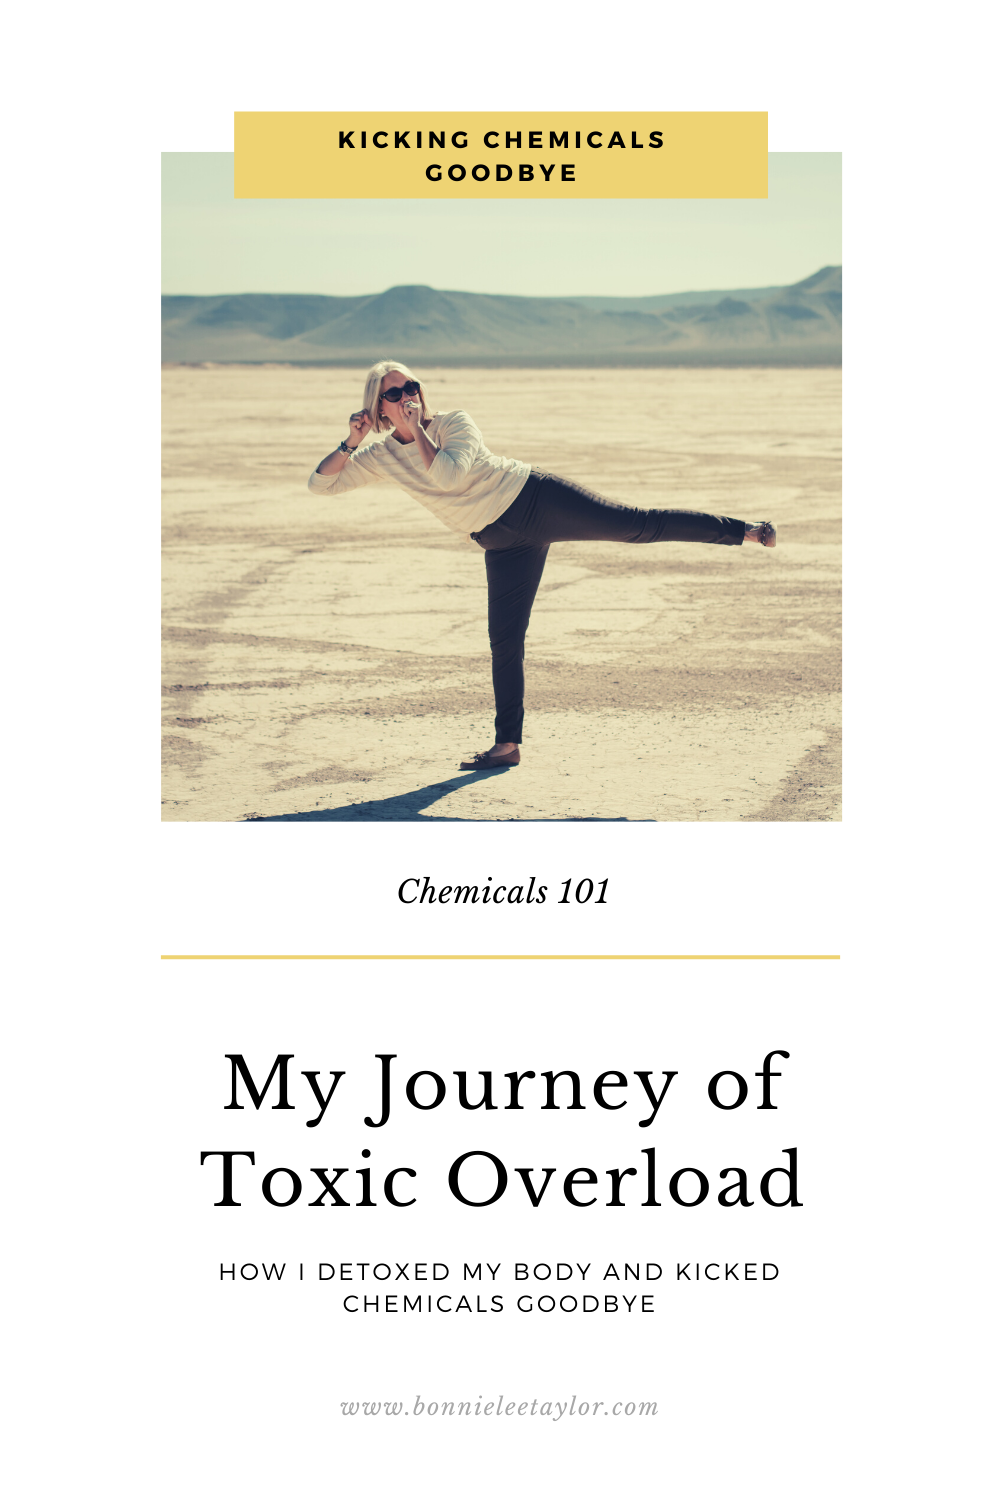 My body was in pain and I knew it was time to ditch the chemicals.  Here's my story, why and how I ditched the chemicals from my life.  #chemicalfree #toxinfree #over60 #essentialoils #toxinoverload